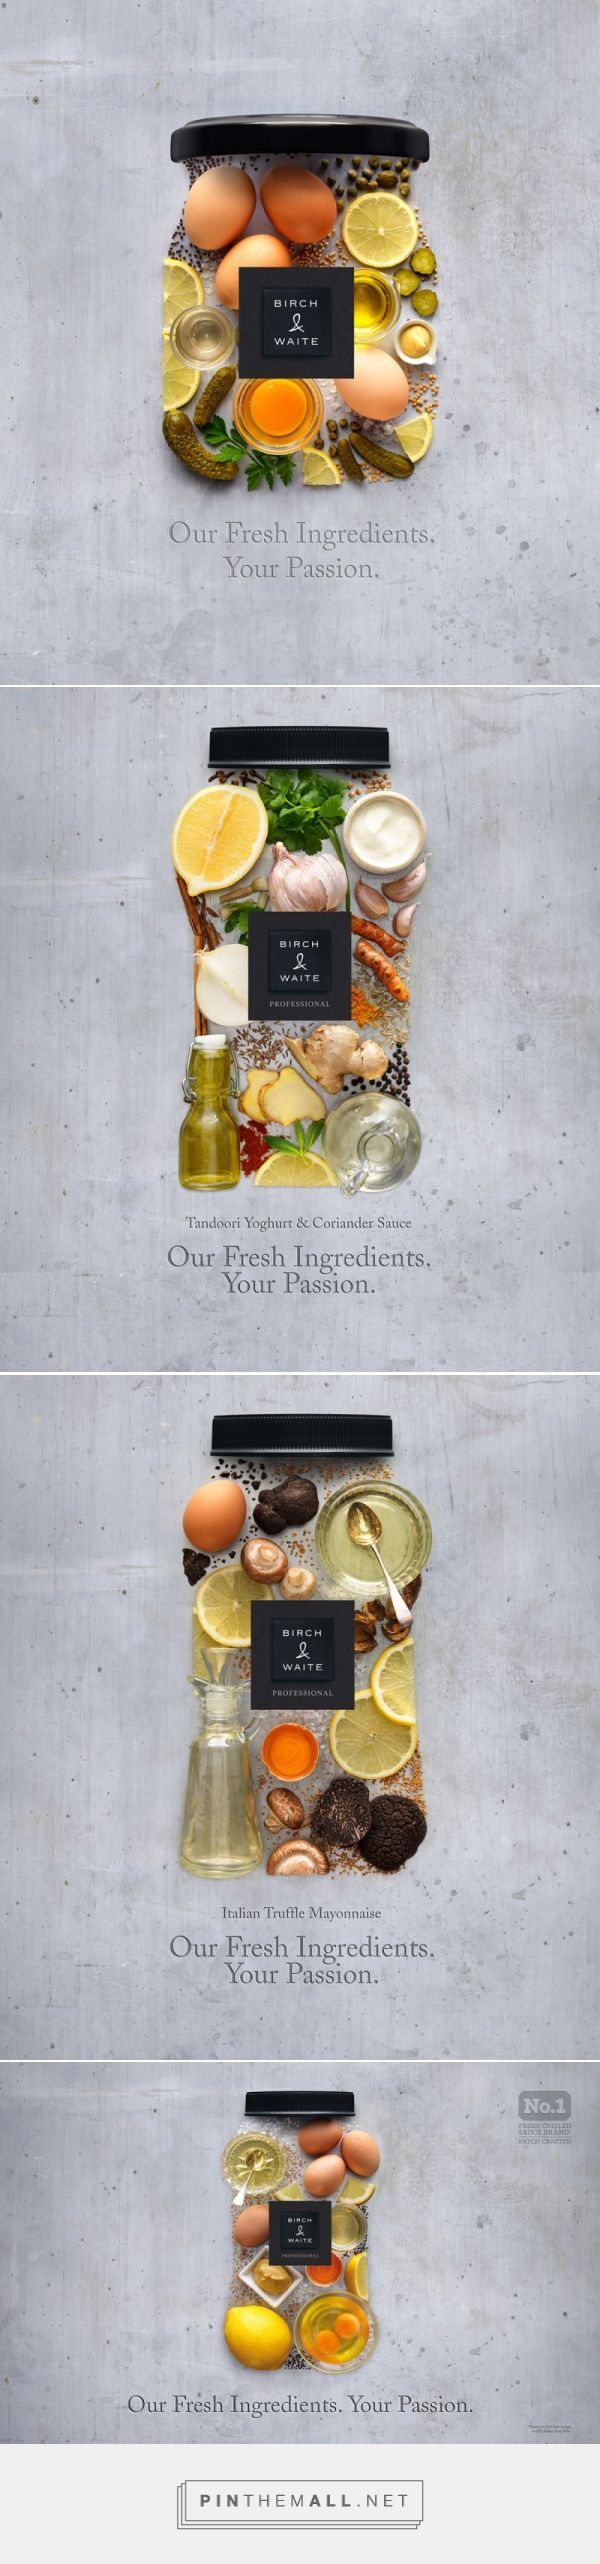 Fresh and creative design  by Jade Moyano via Trendland curated by Packaging Diva PD.